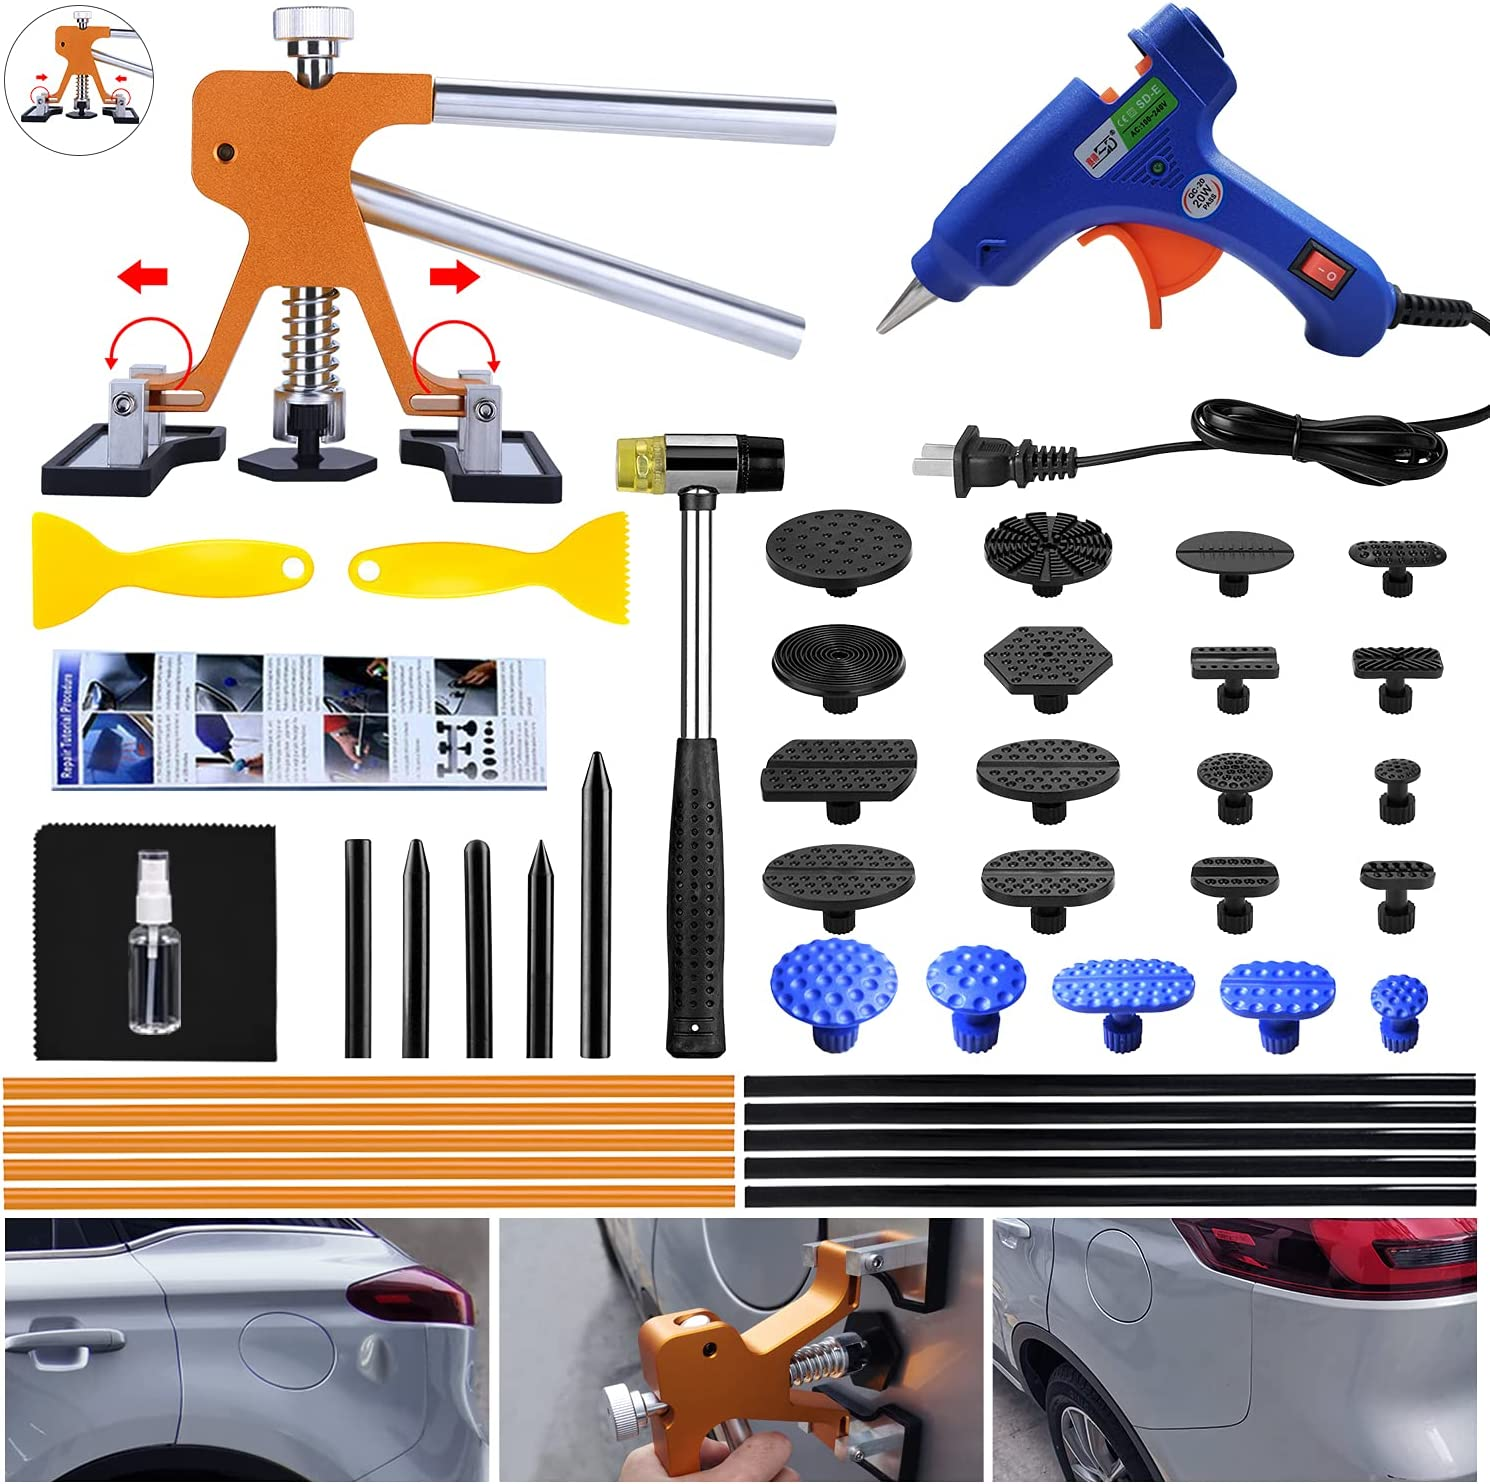 Randalfy Max 63% OFF Auto Body Dent Puller - Repair Adjust with Car Genuine Kit